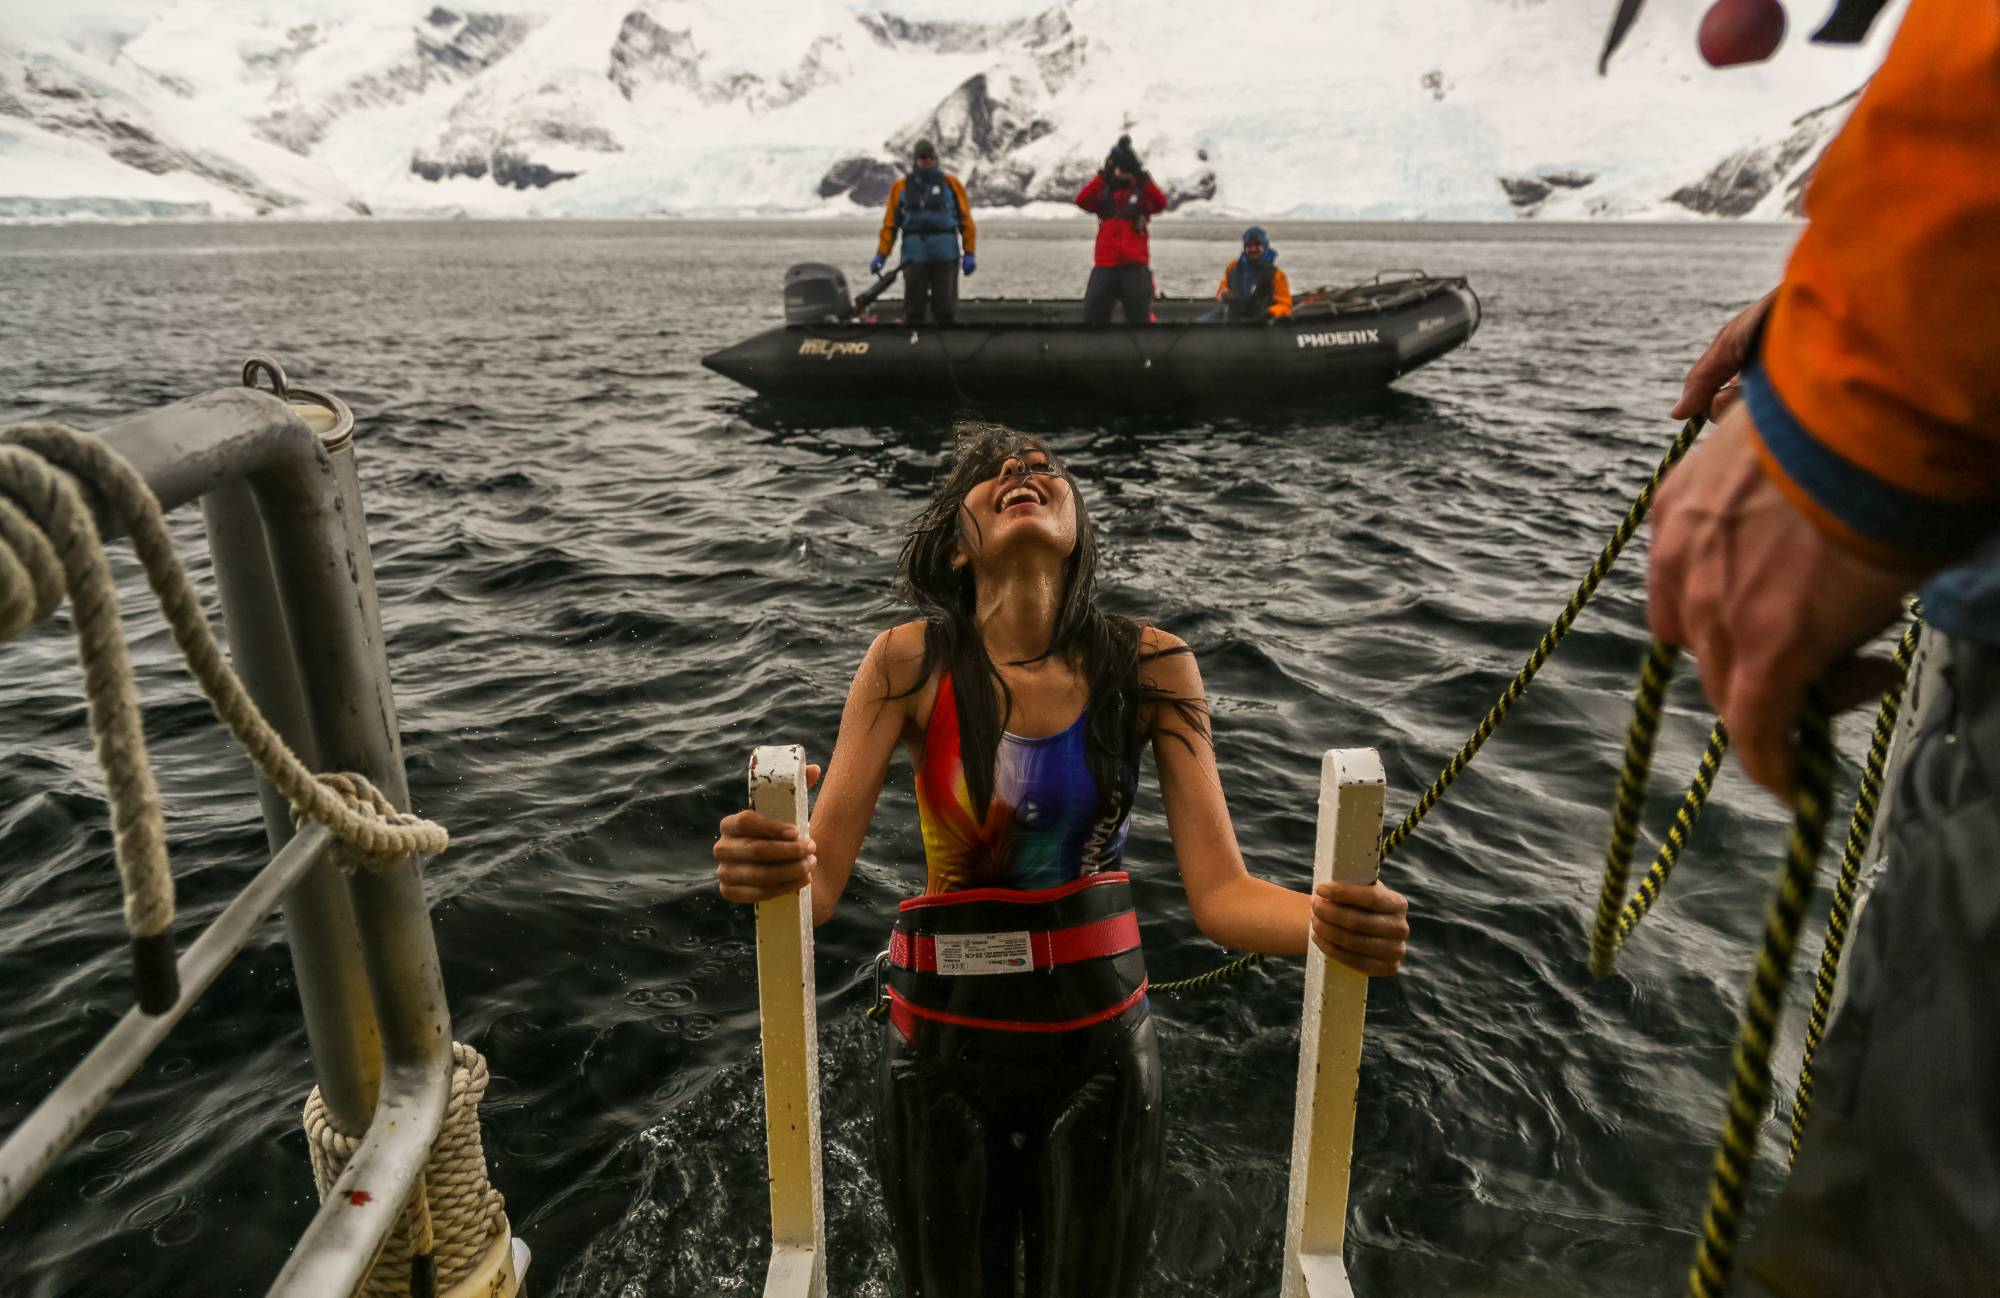 Avani Awasthee has visited Antarctica twice and was selected as Miss Tourism Metropolitan India in 2019. | COURTESY OF AVANI AWASTHEE